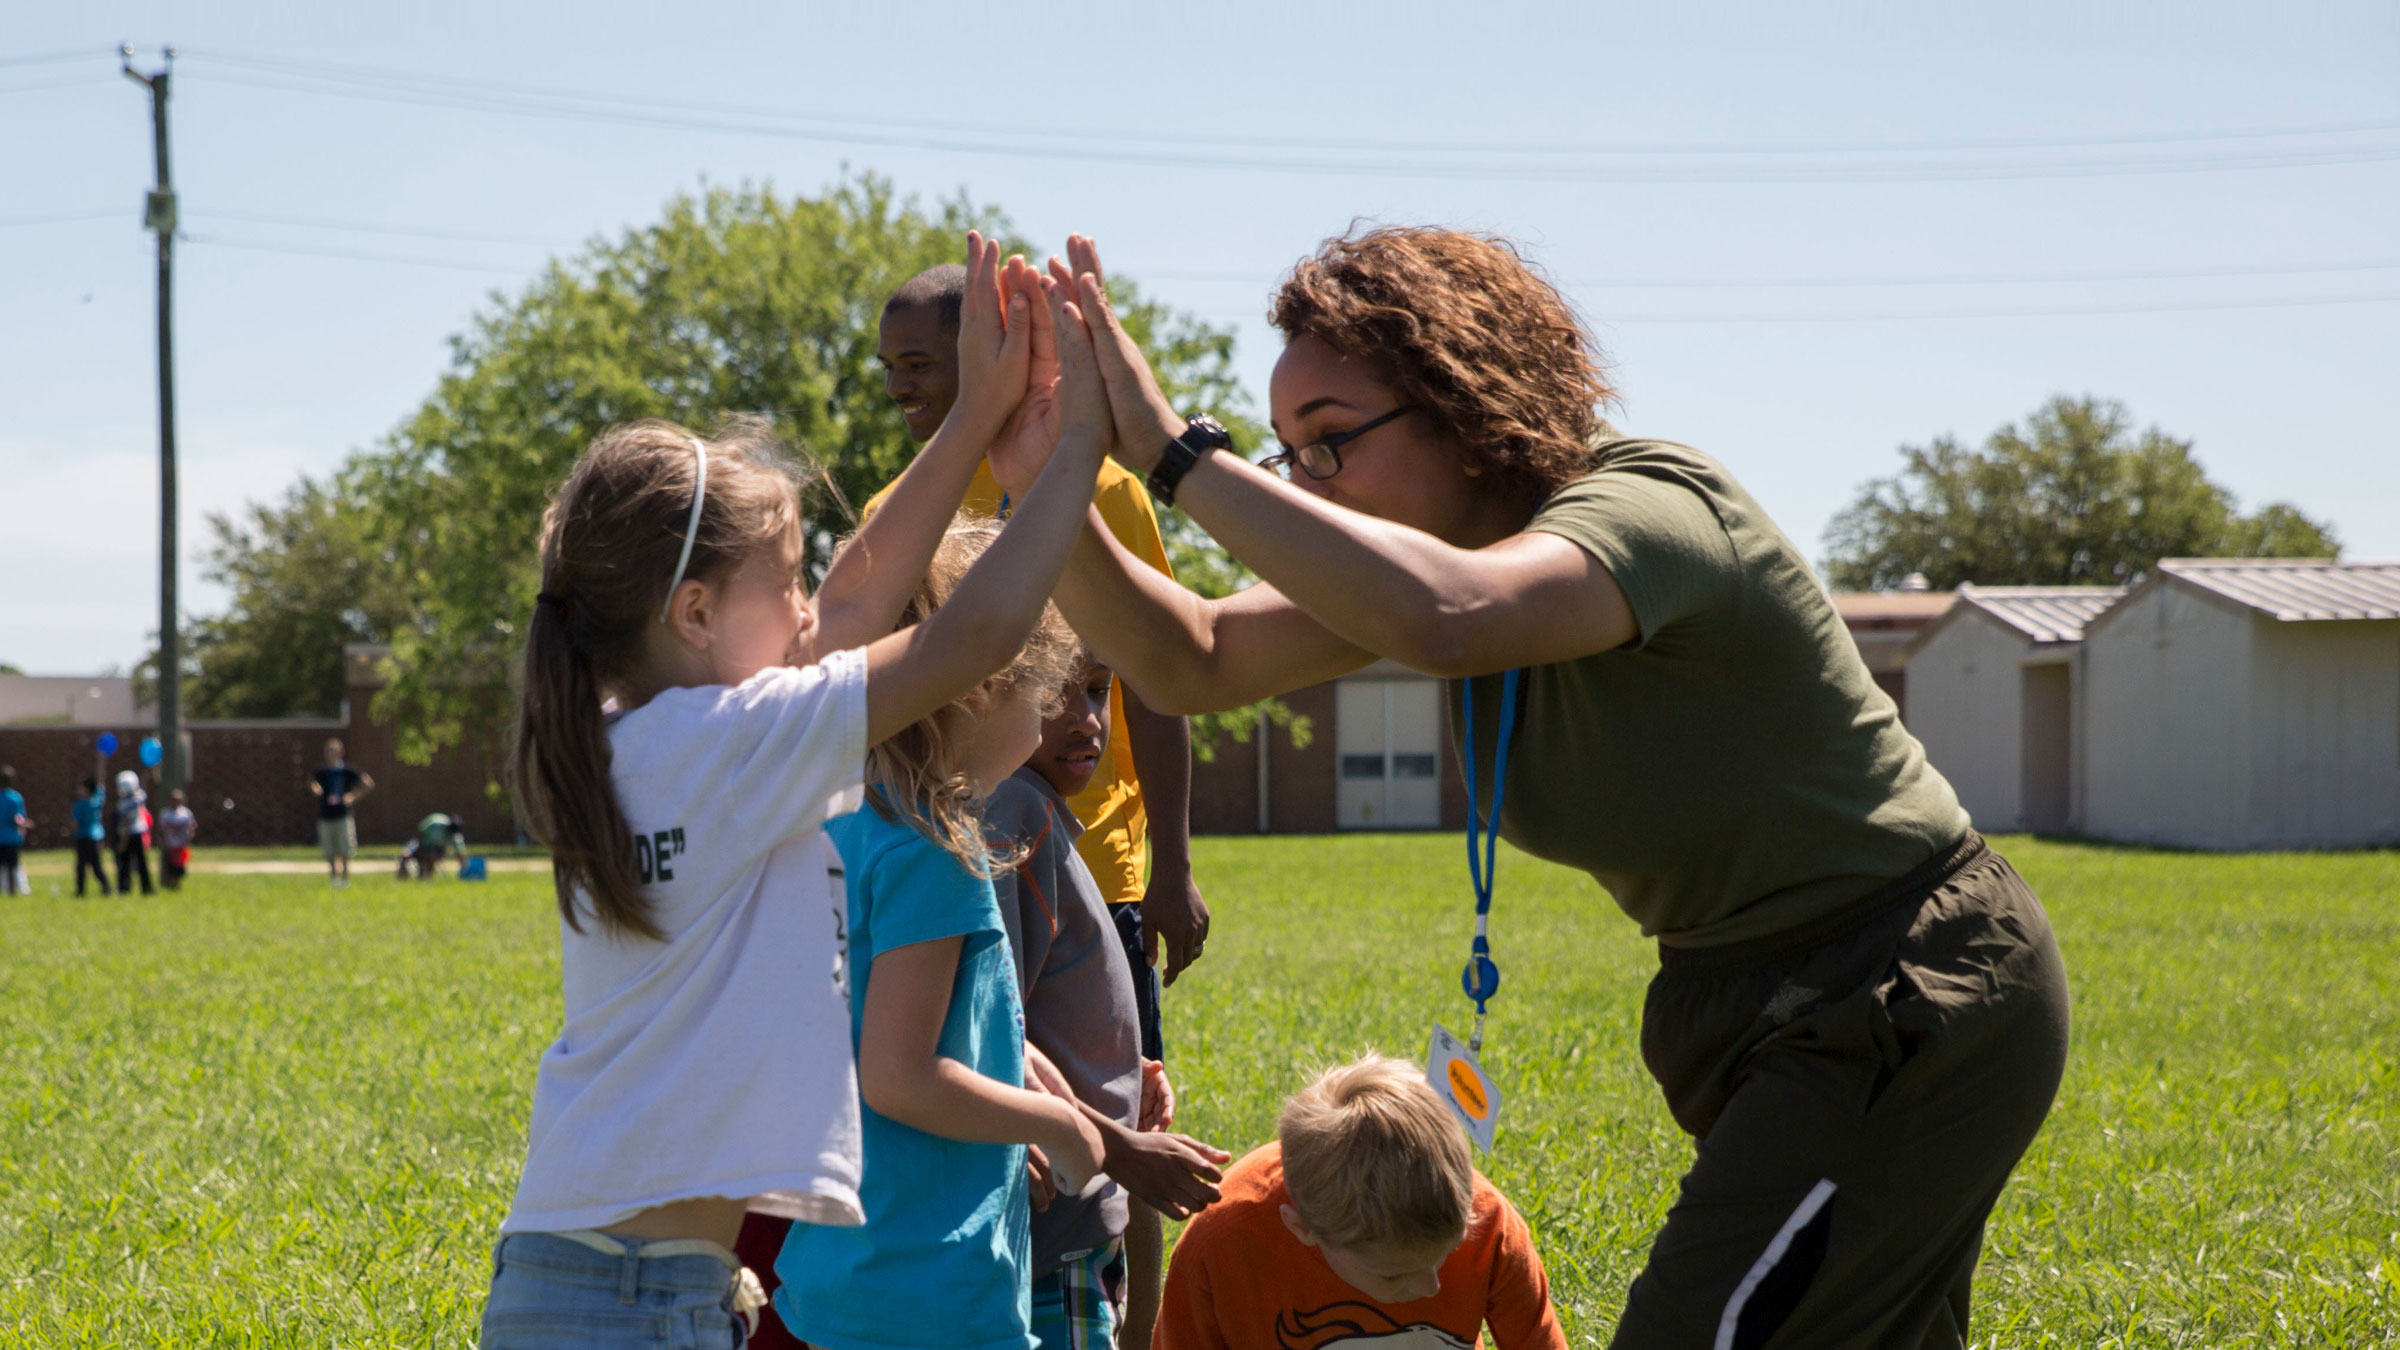 Child high fiving adult at community event